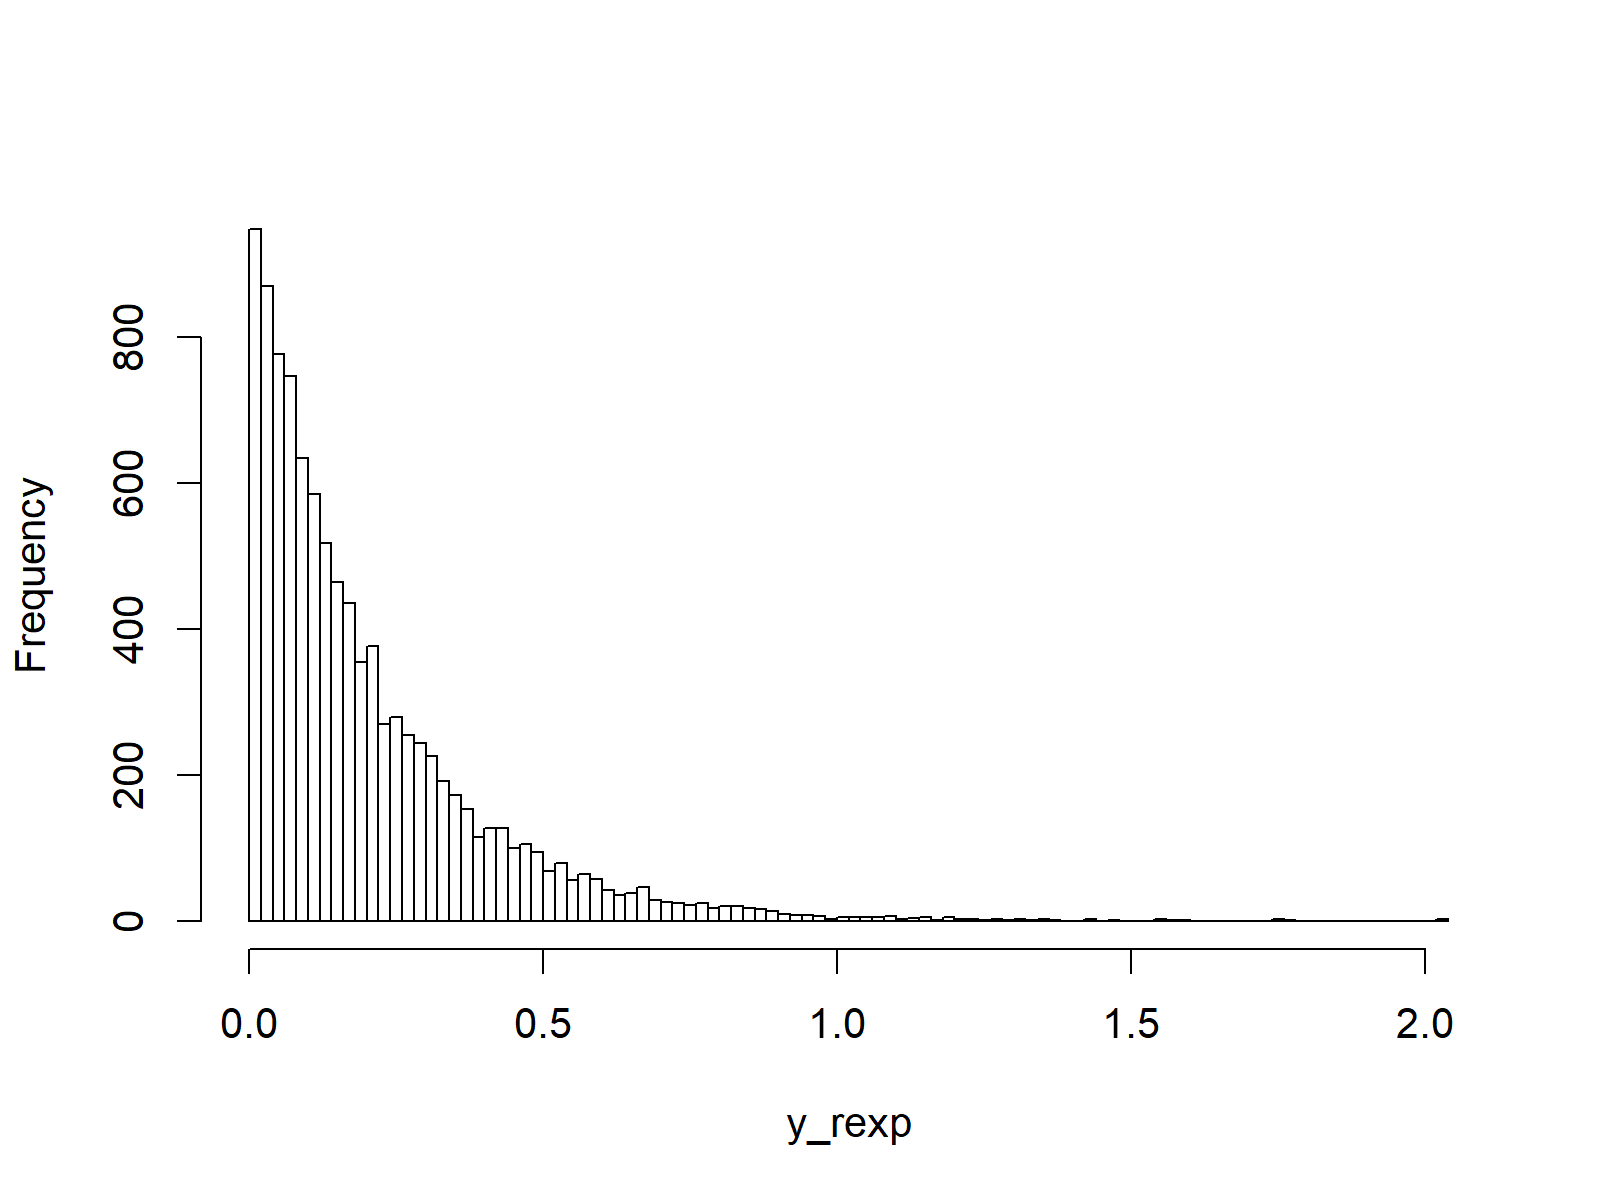 exponential random numbers as plot in r